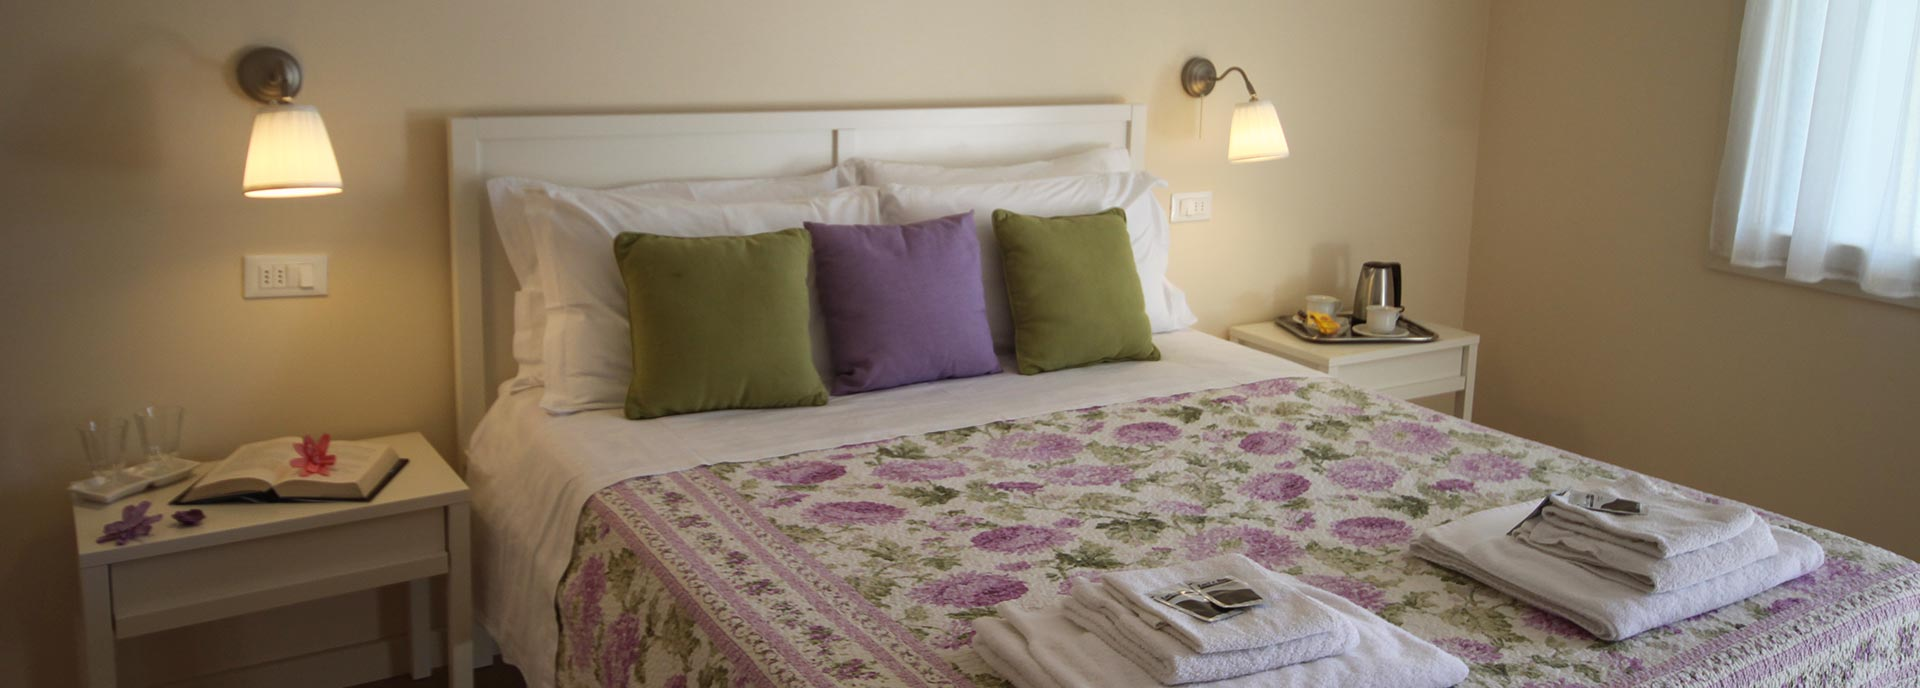 Letto matrimoniale nel Bed and Breakfast RedHouse